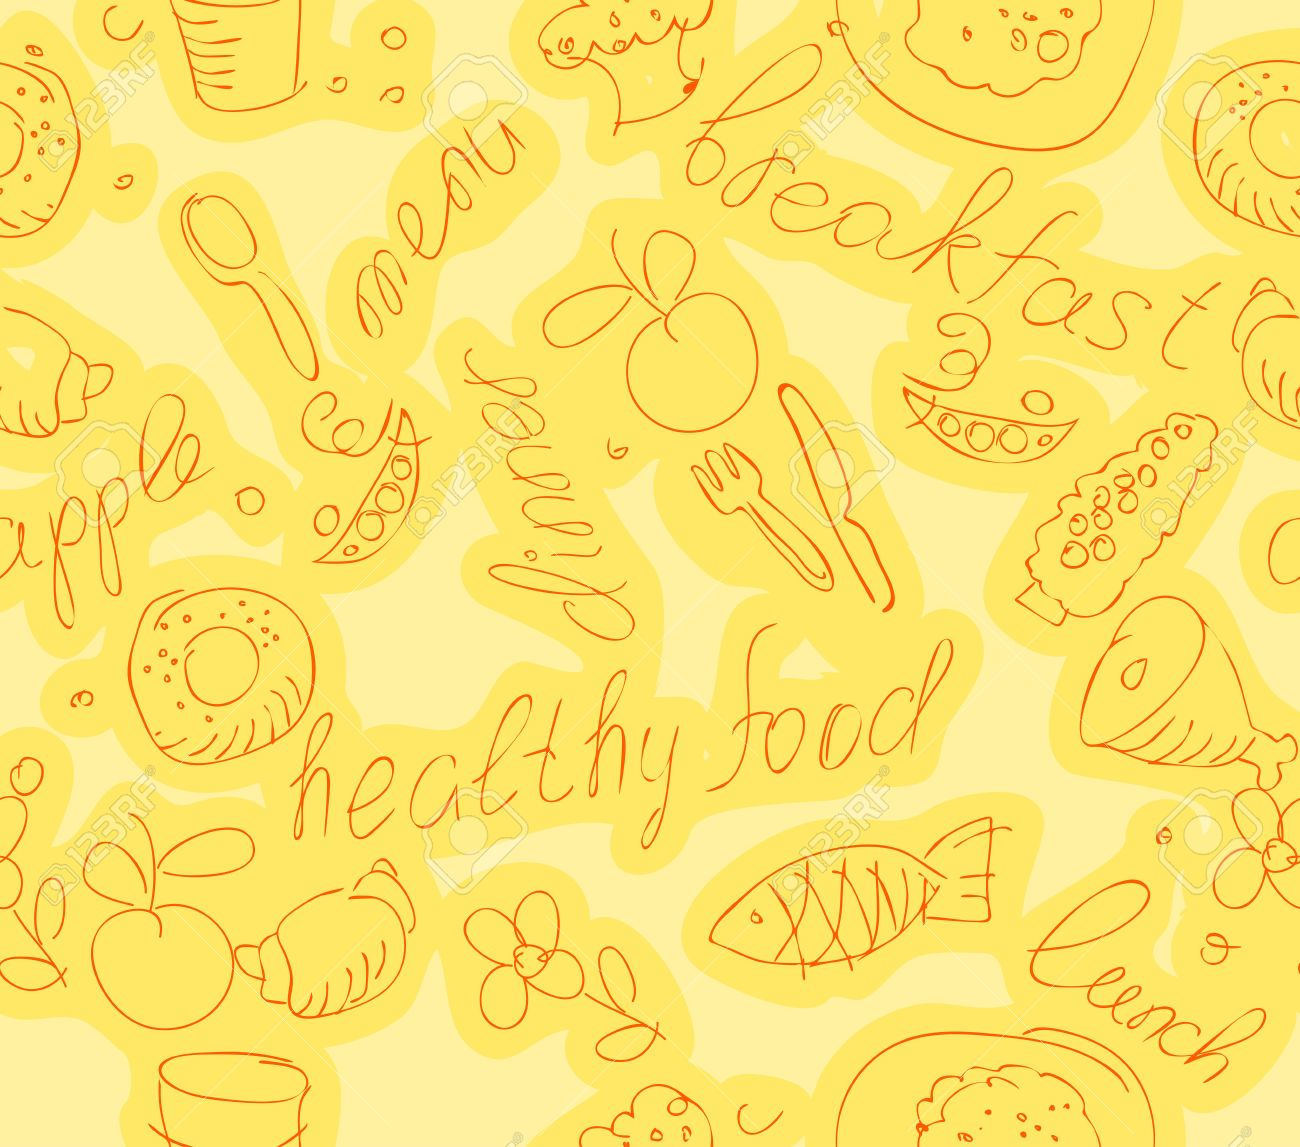 Yellow Kitchen Wallpaper Wallpaper With Food And Kitchen Items On A Yellow Background